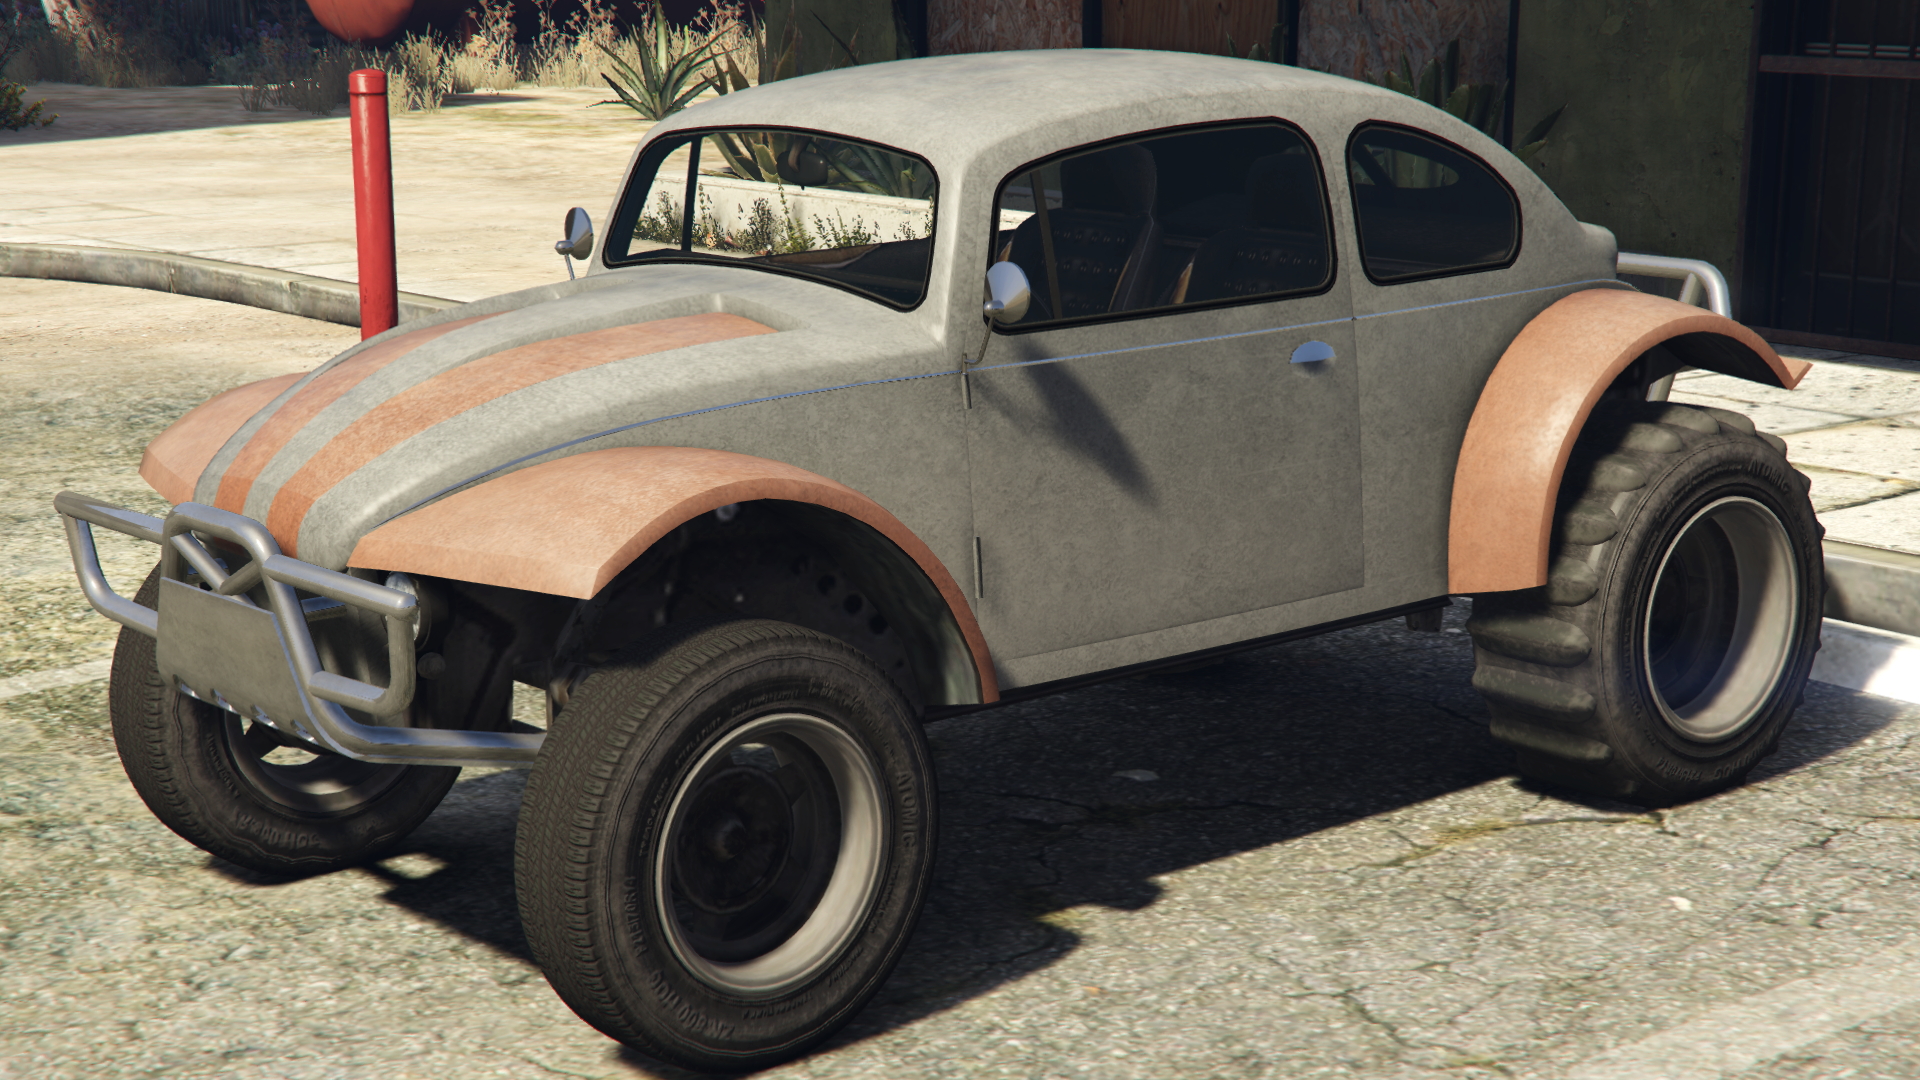 Image cj gtav transparent png gta wiki the grand theft auto wiki - An Injection In Grand Theft Auto V Rear Quarter View